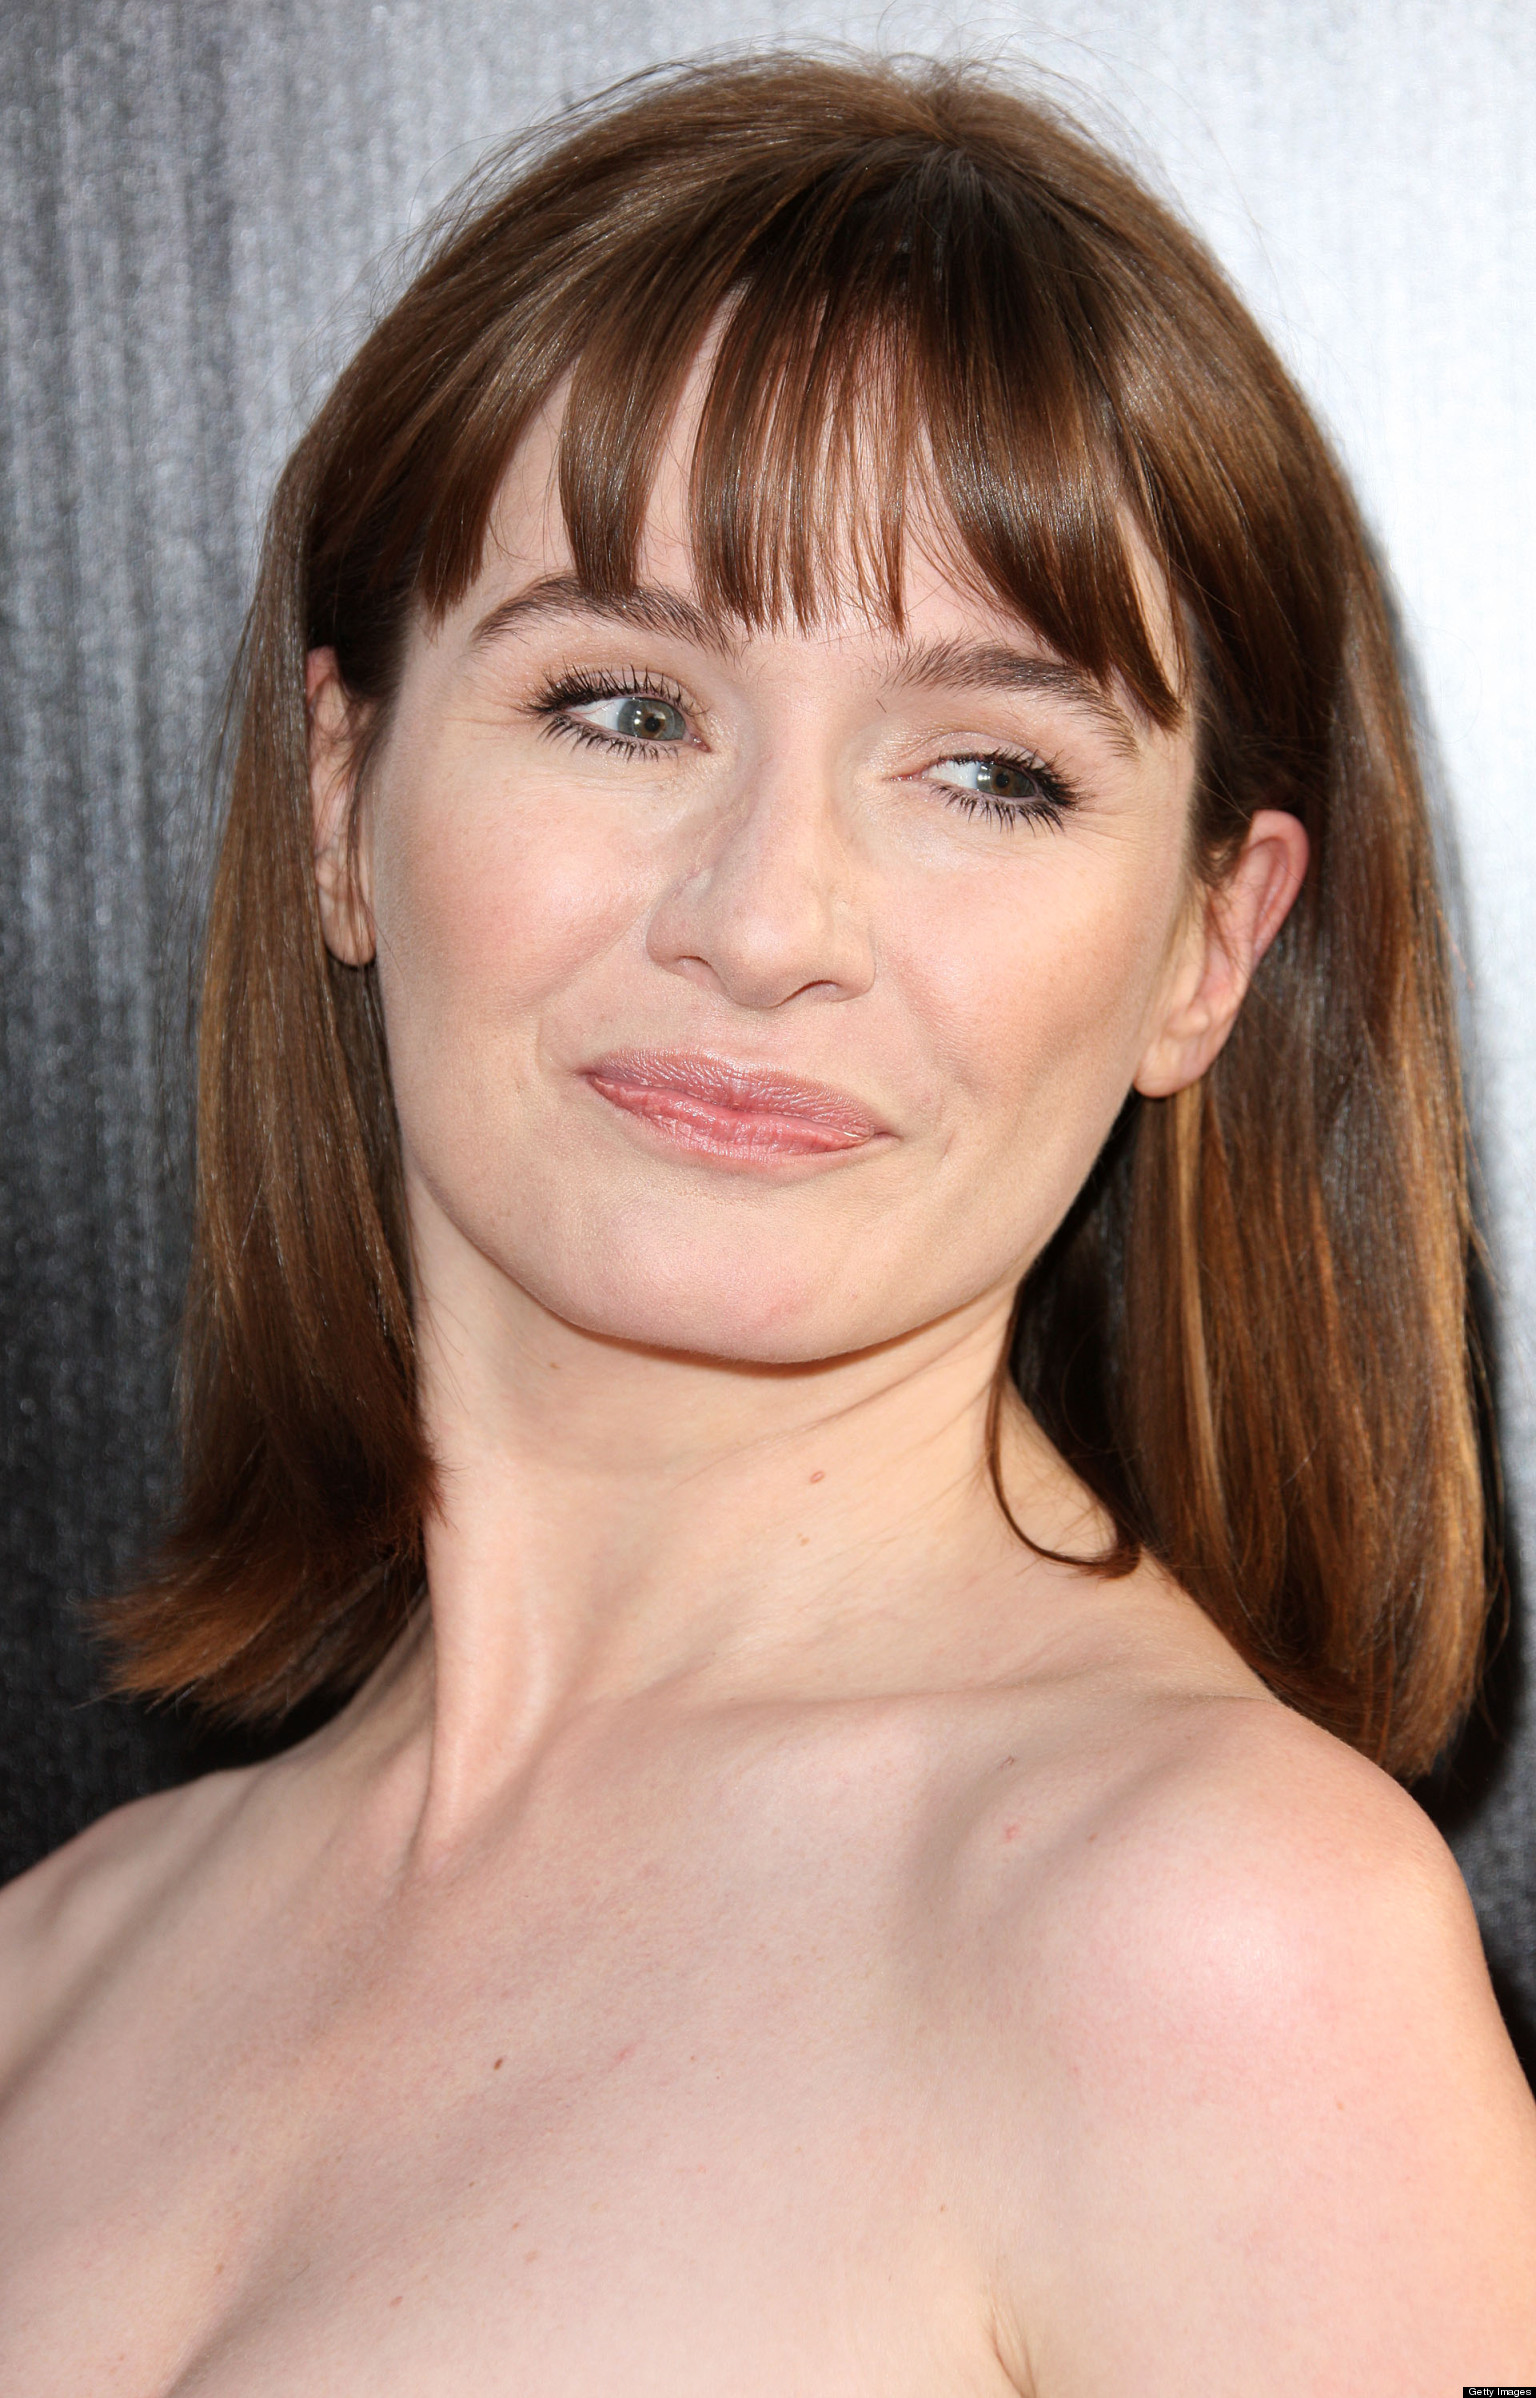 emily mortimer filmleriemily mortimer eye, emily mortimer age, emily mortimer film, emily mortimer notting hill, emily mortimer filmleri, emily mortimer wdw, emily mortimer fansite, emily mortimer bruce willis, emily mortimer speaking russian, emily mortimer instagram, emily mortimer ewan mcgregor film, emily mortimer vanity fair, emily mortimer, emily mortimer imdb, emily mortimer husband, emily mortimer wiki, emily mortimer and alessandro nivola, emily mortimer twitter, emily mortimer newsroom, emily mortimer actress